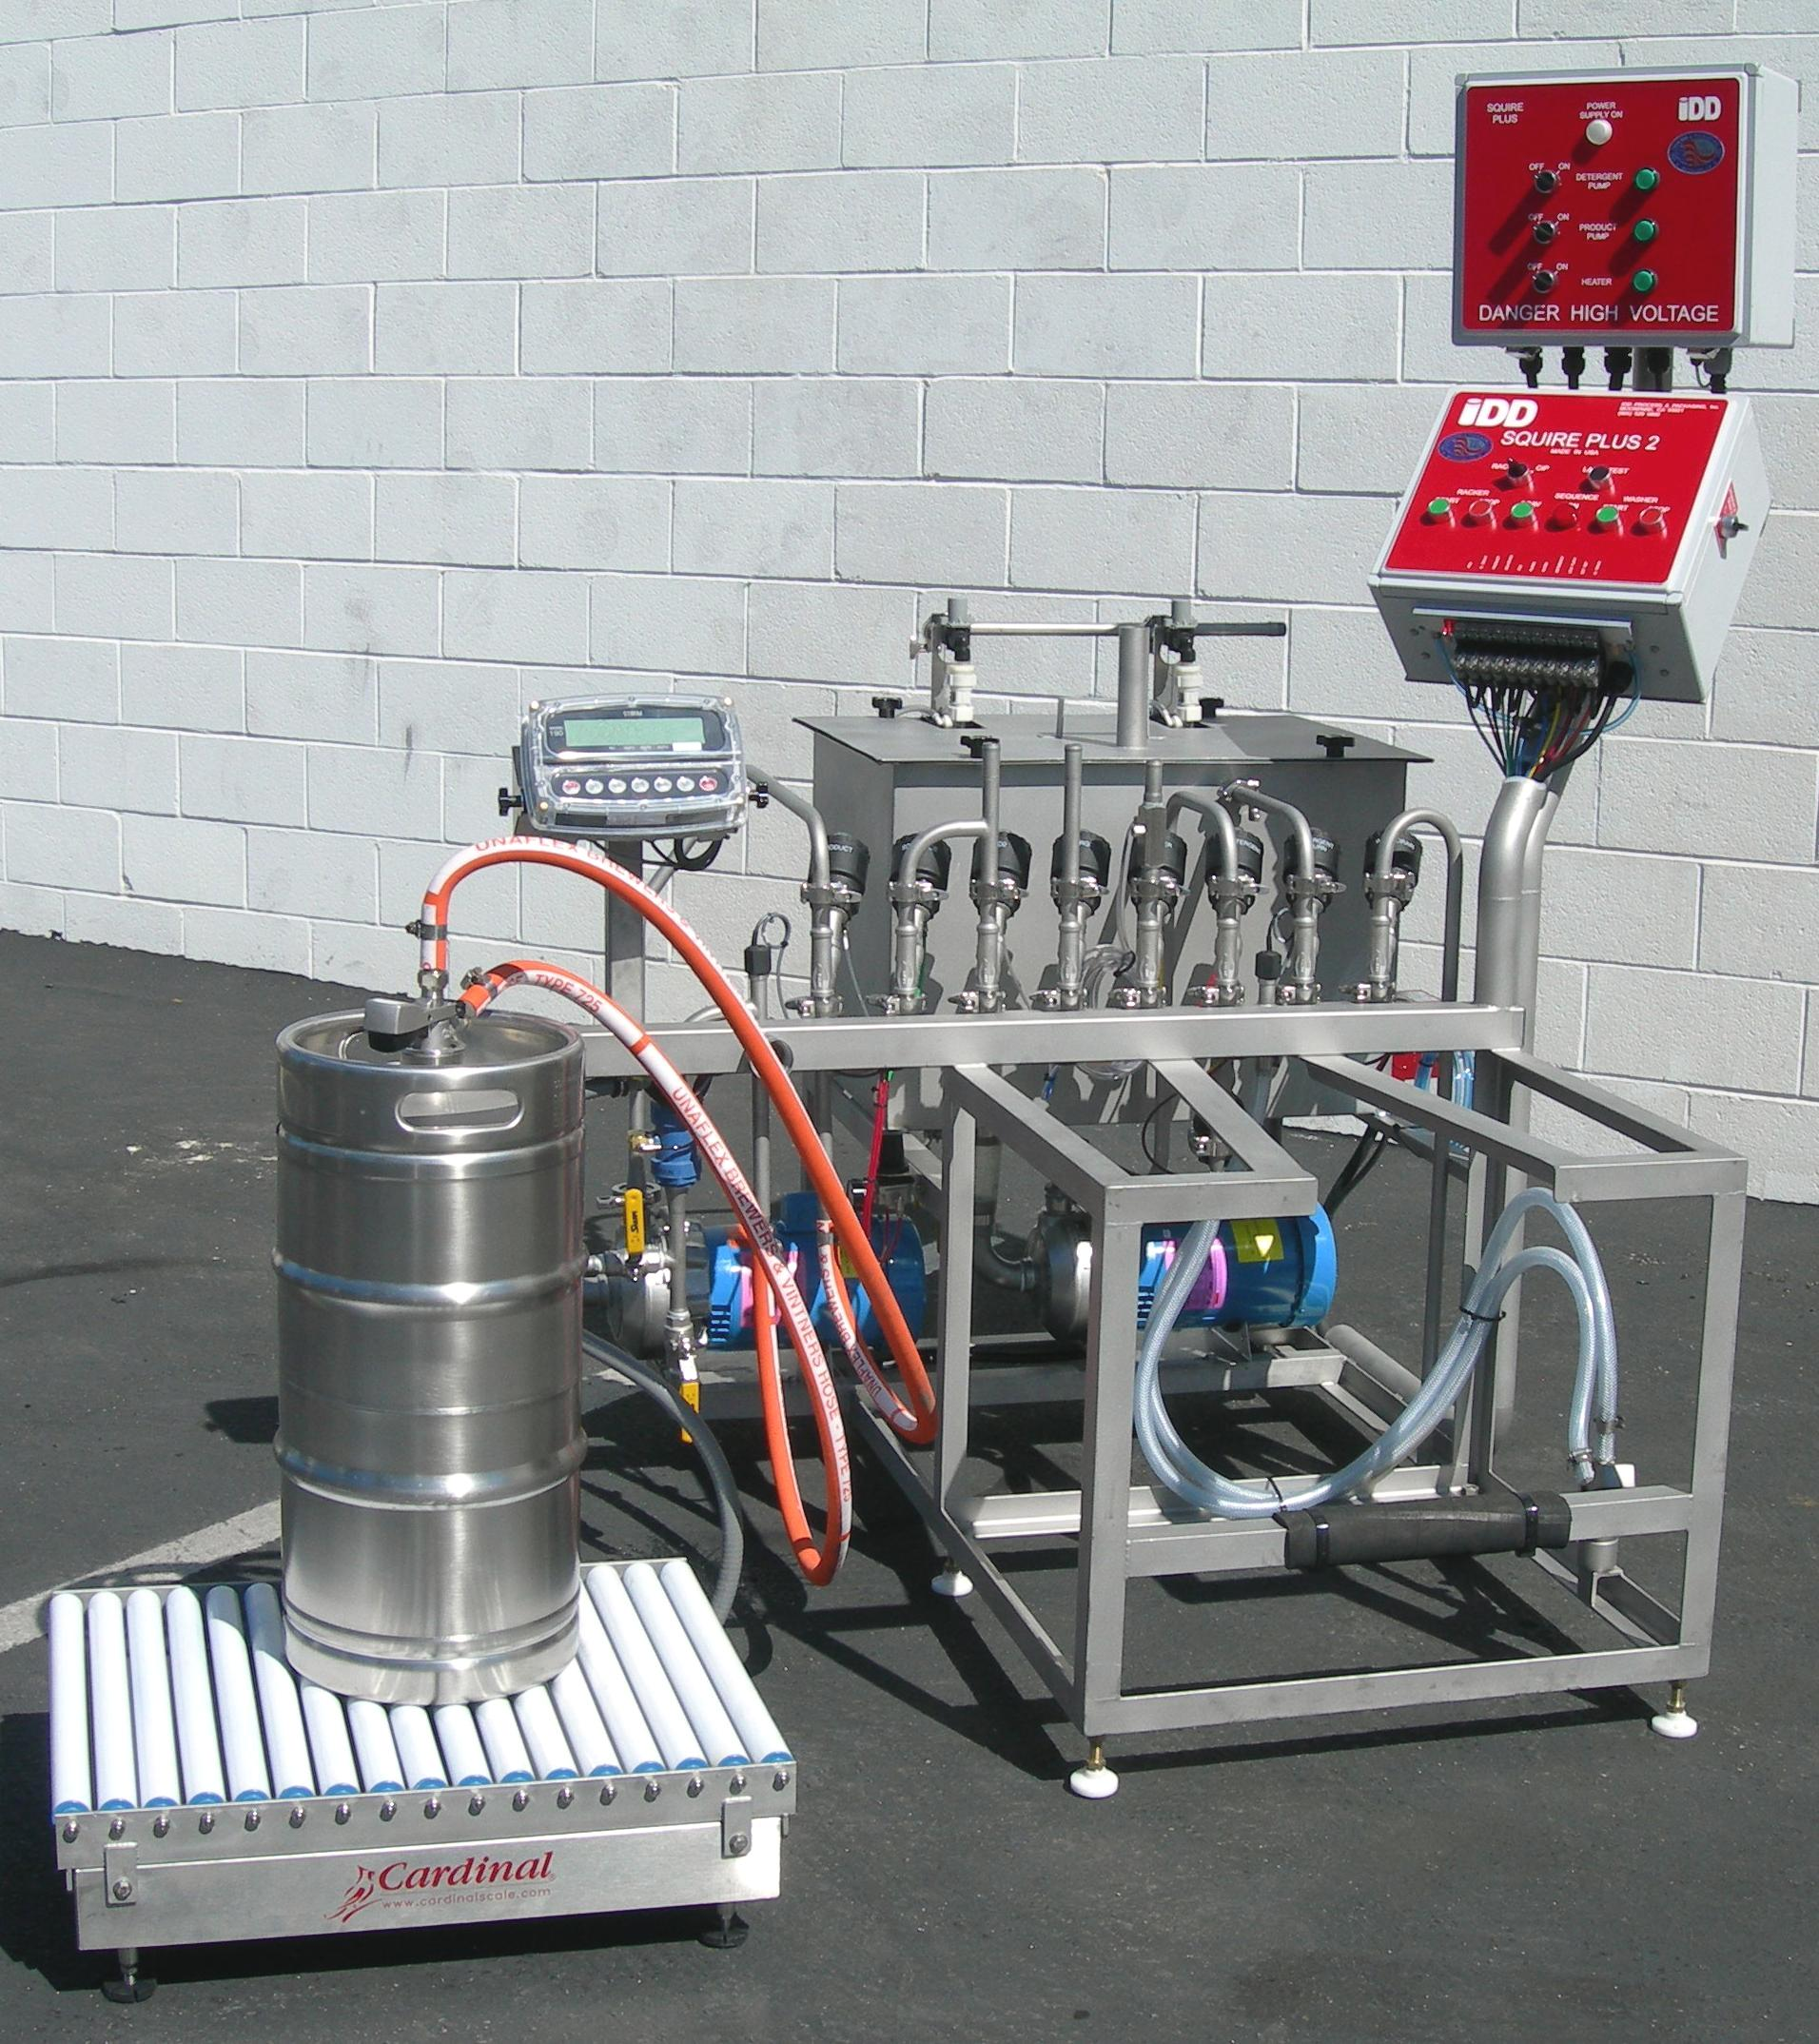 Squire Series - Up to 30 kegs washed/filled per hourFor most craft beverage manufacturers, the Squire line offers a state-of-the-art solution for keg washing, sanitizing,and filling. With over twenty years of Squires out in the world, this is our most popular and time-tested machine line.